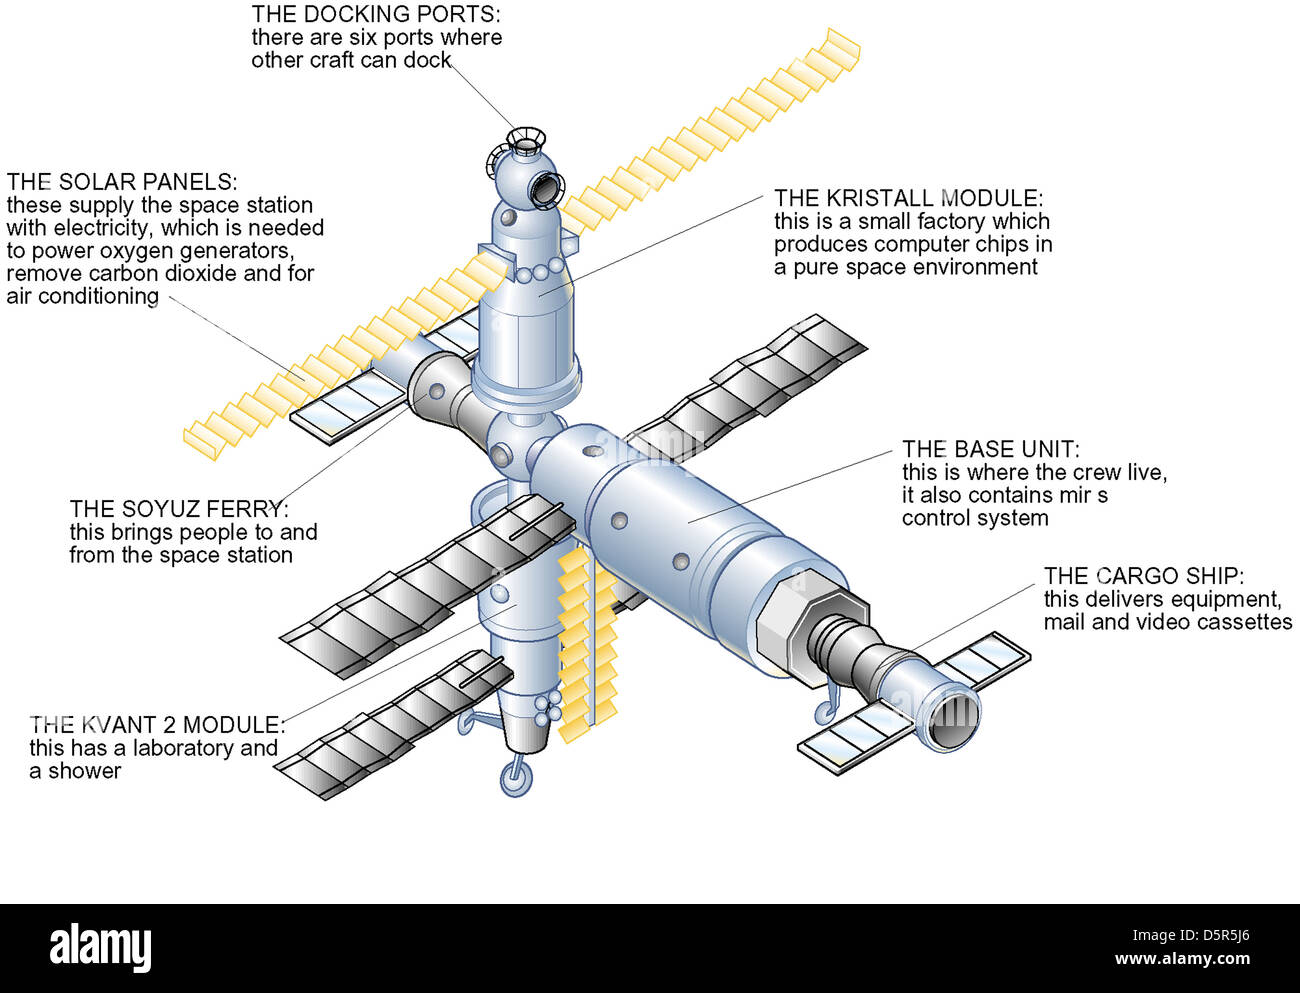 Space station - Stock Image